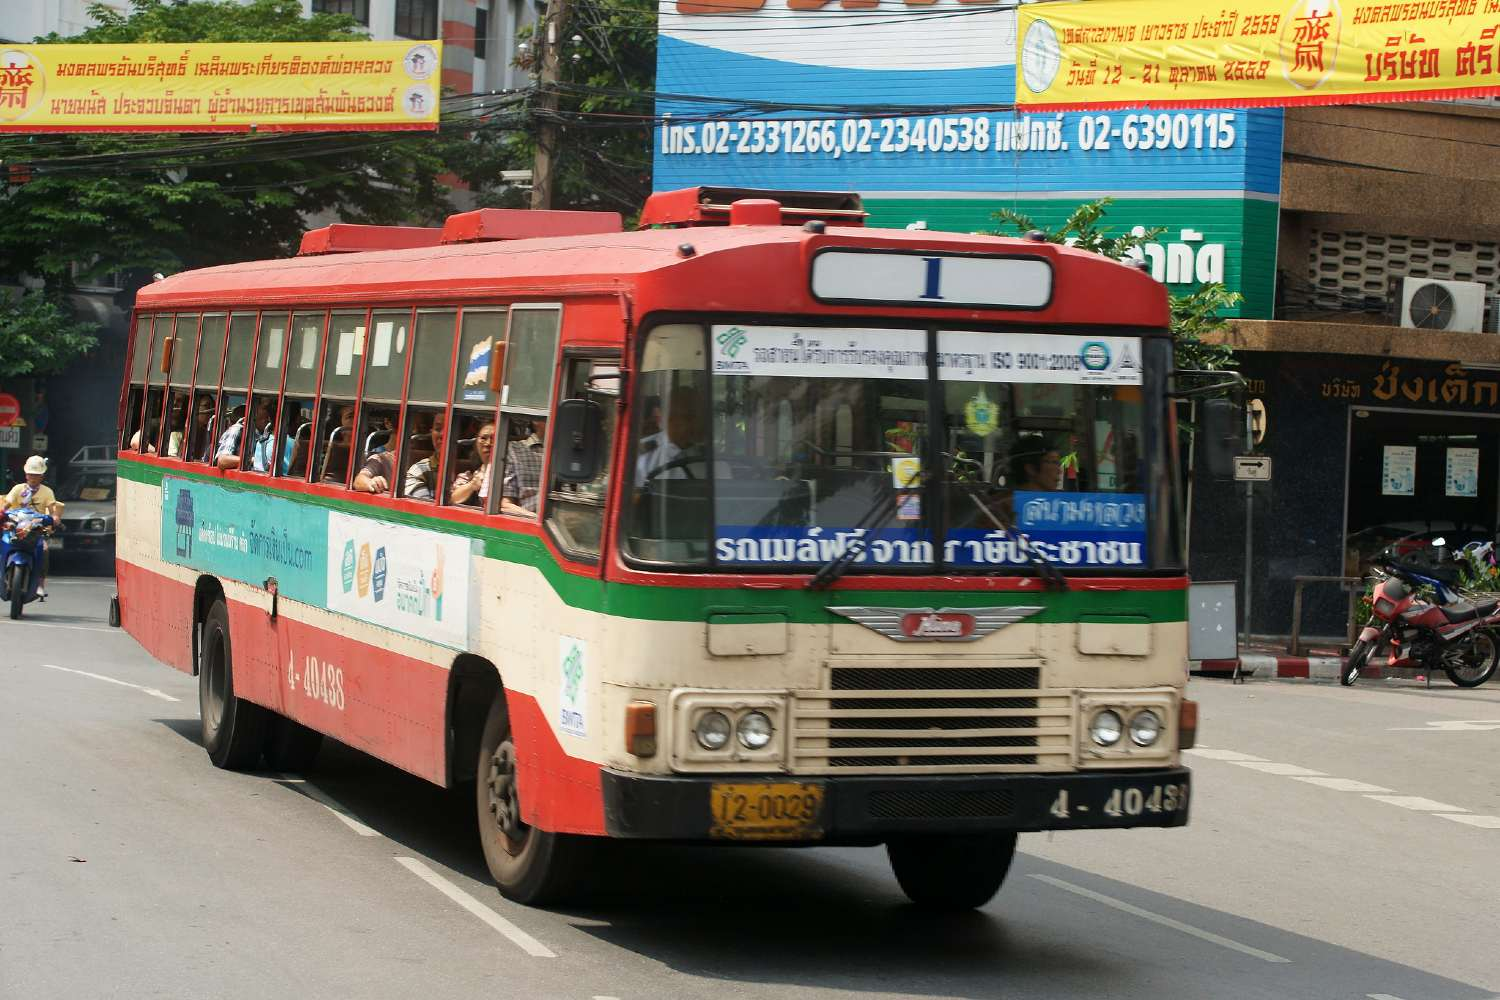 A red bus in Bangkok, Thailand